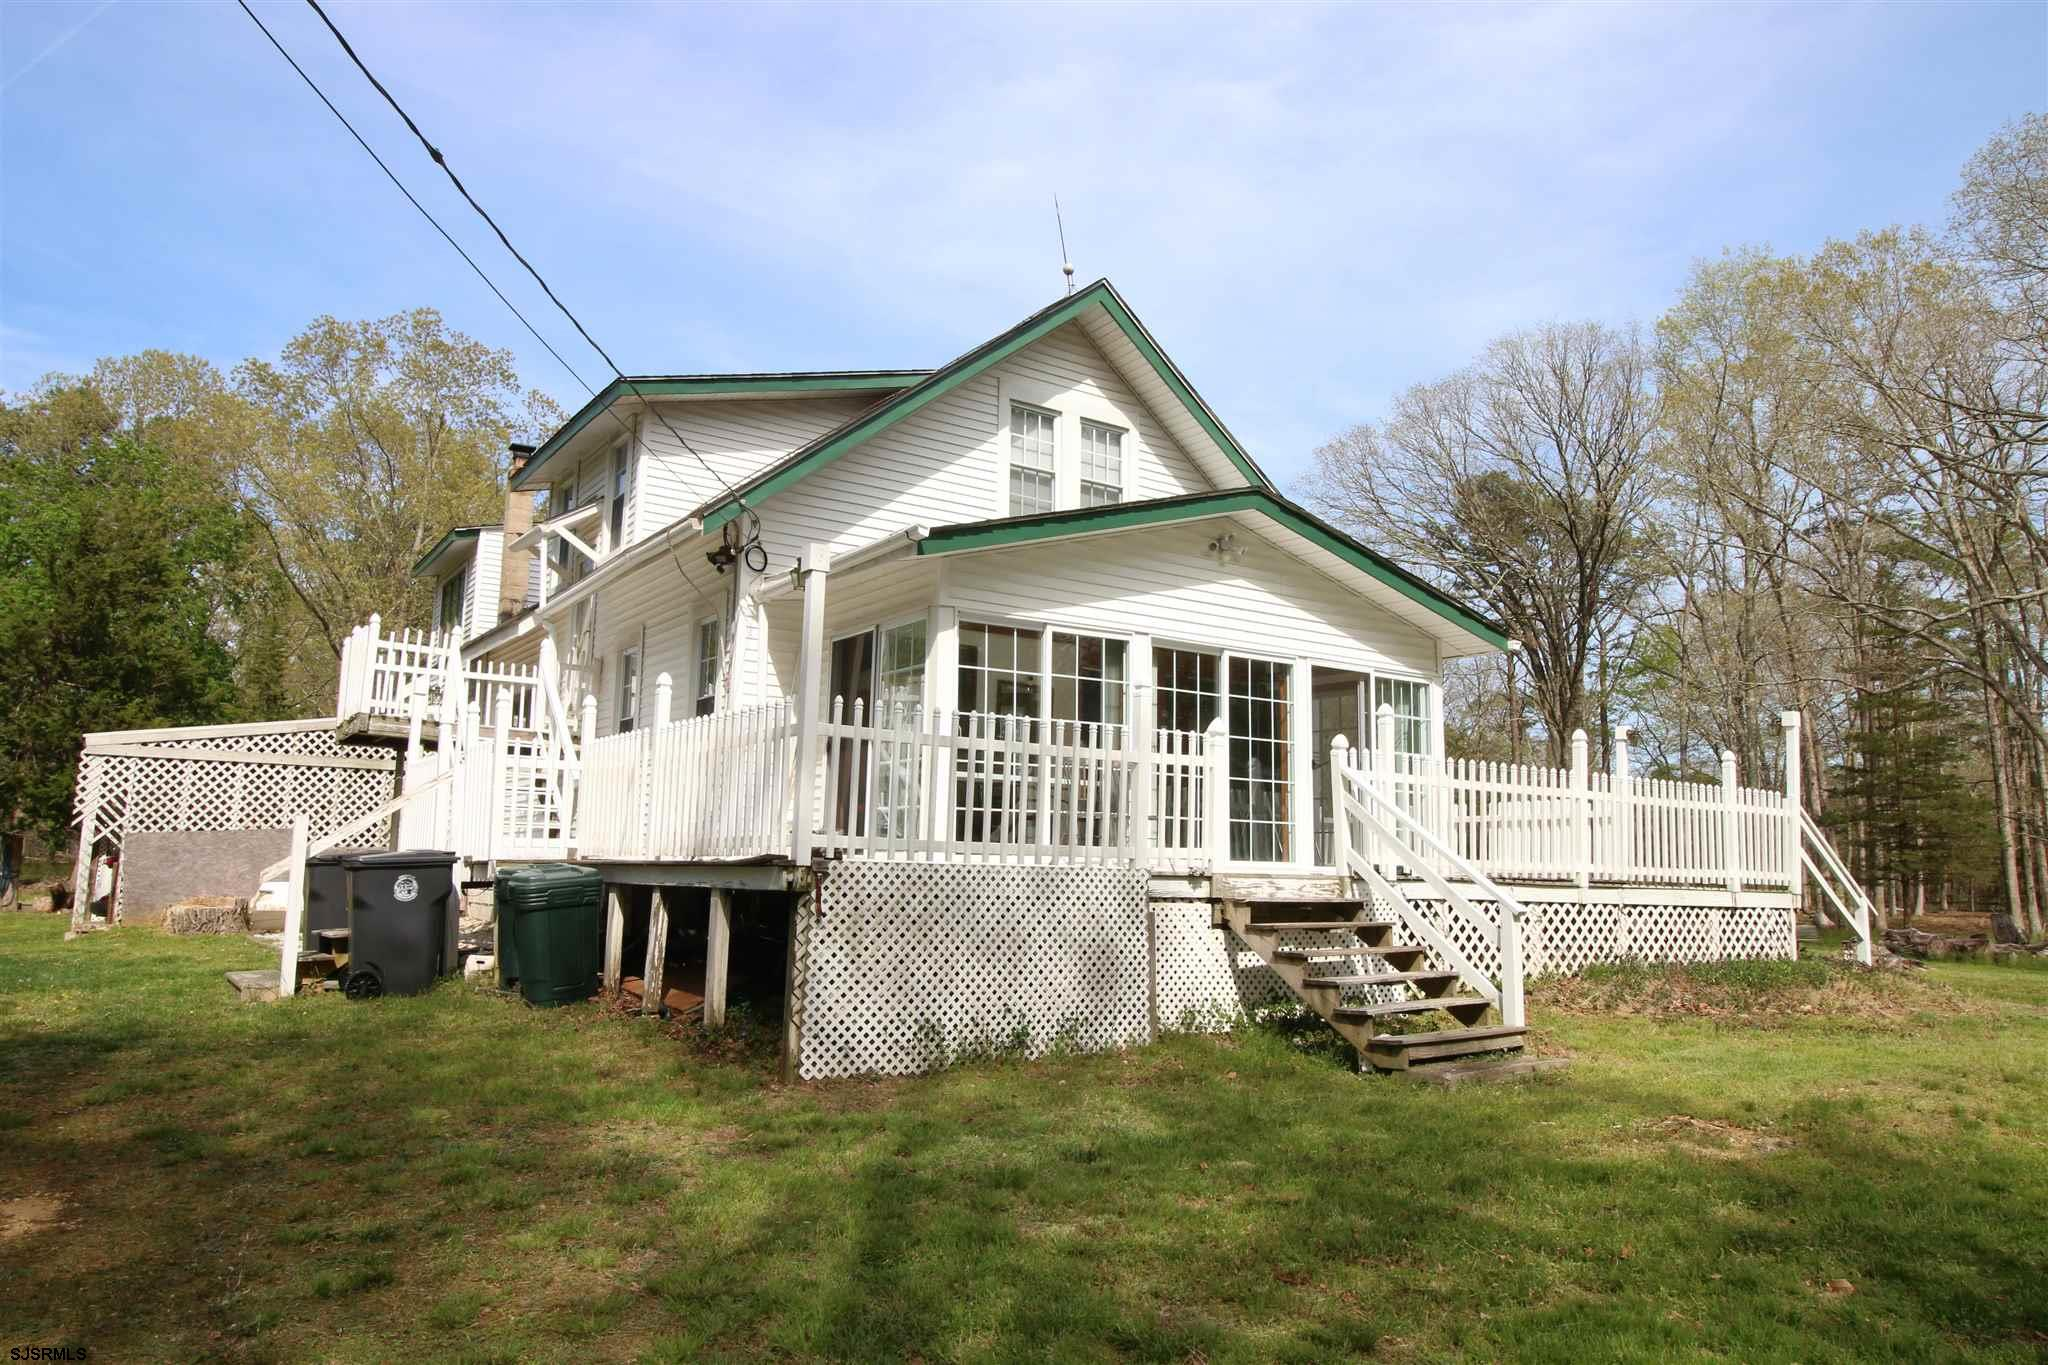 FANTASTIC LOCATION IN LAURELDALE! ALMOST TEN ACRES! 2 STORY HOME CURRENTLY USED AS A DUPLEX WAITING